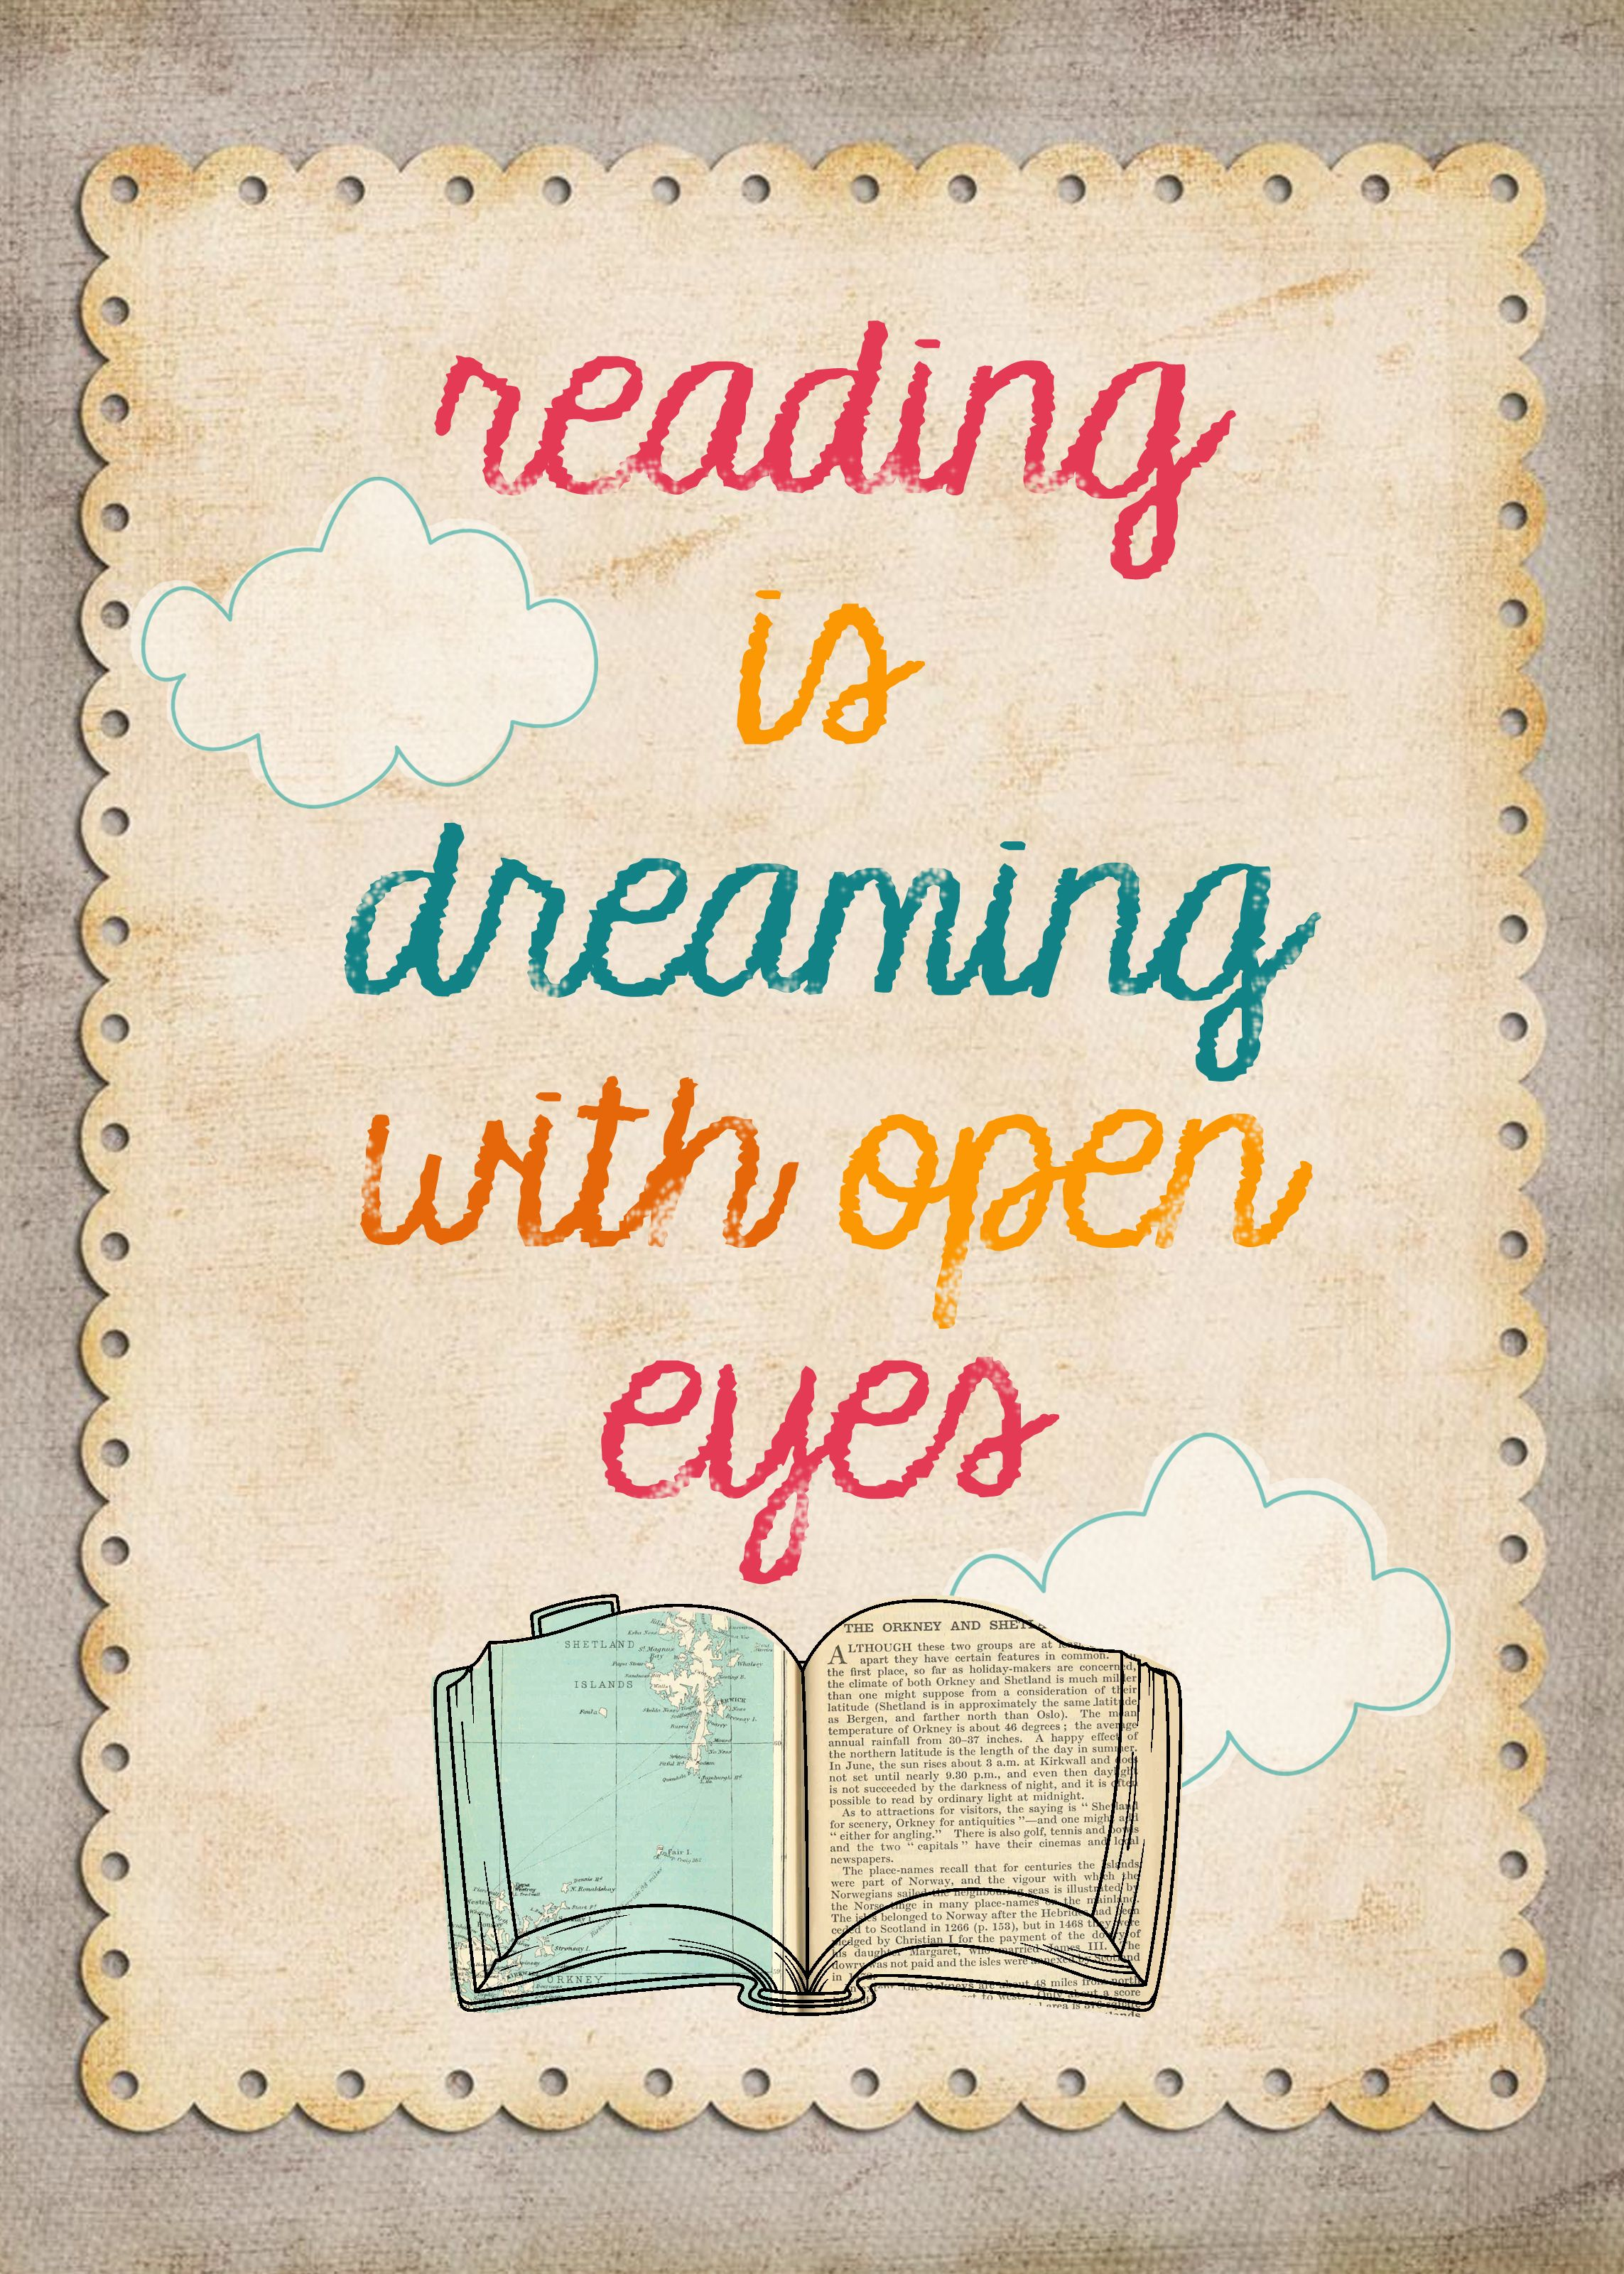 Free Reading Artwork Reading Artwork Reading Quotes Library Quotes